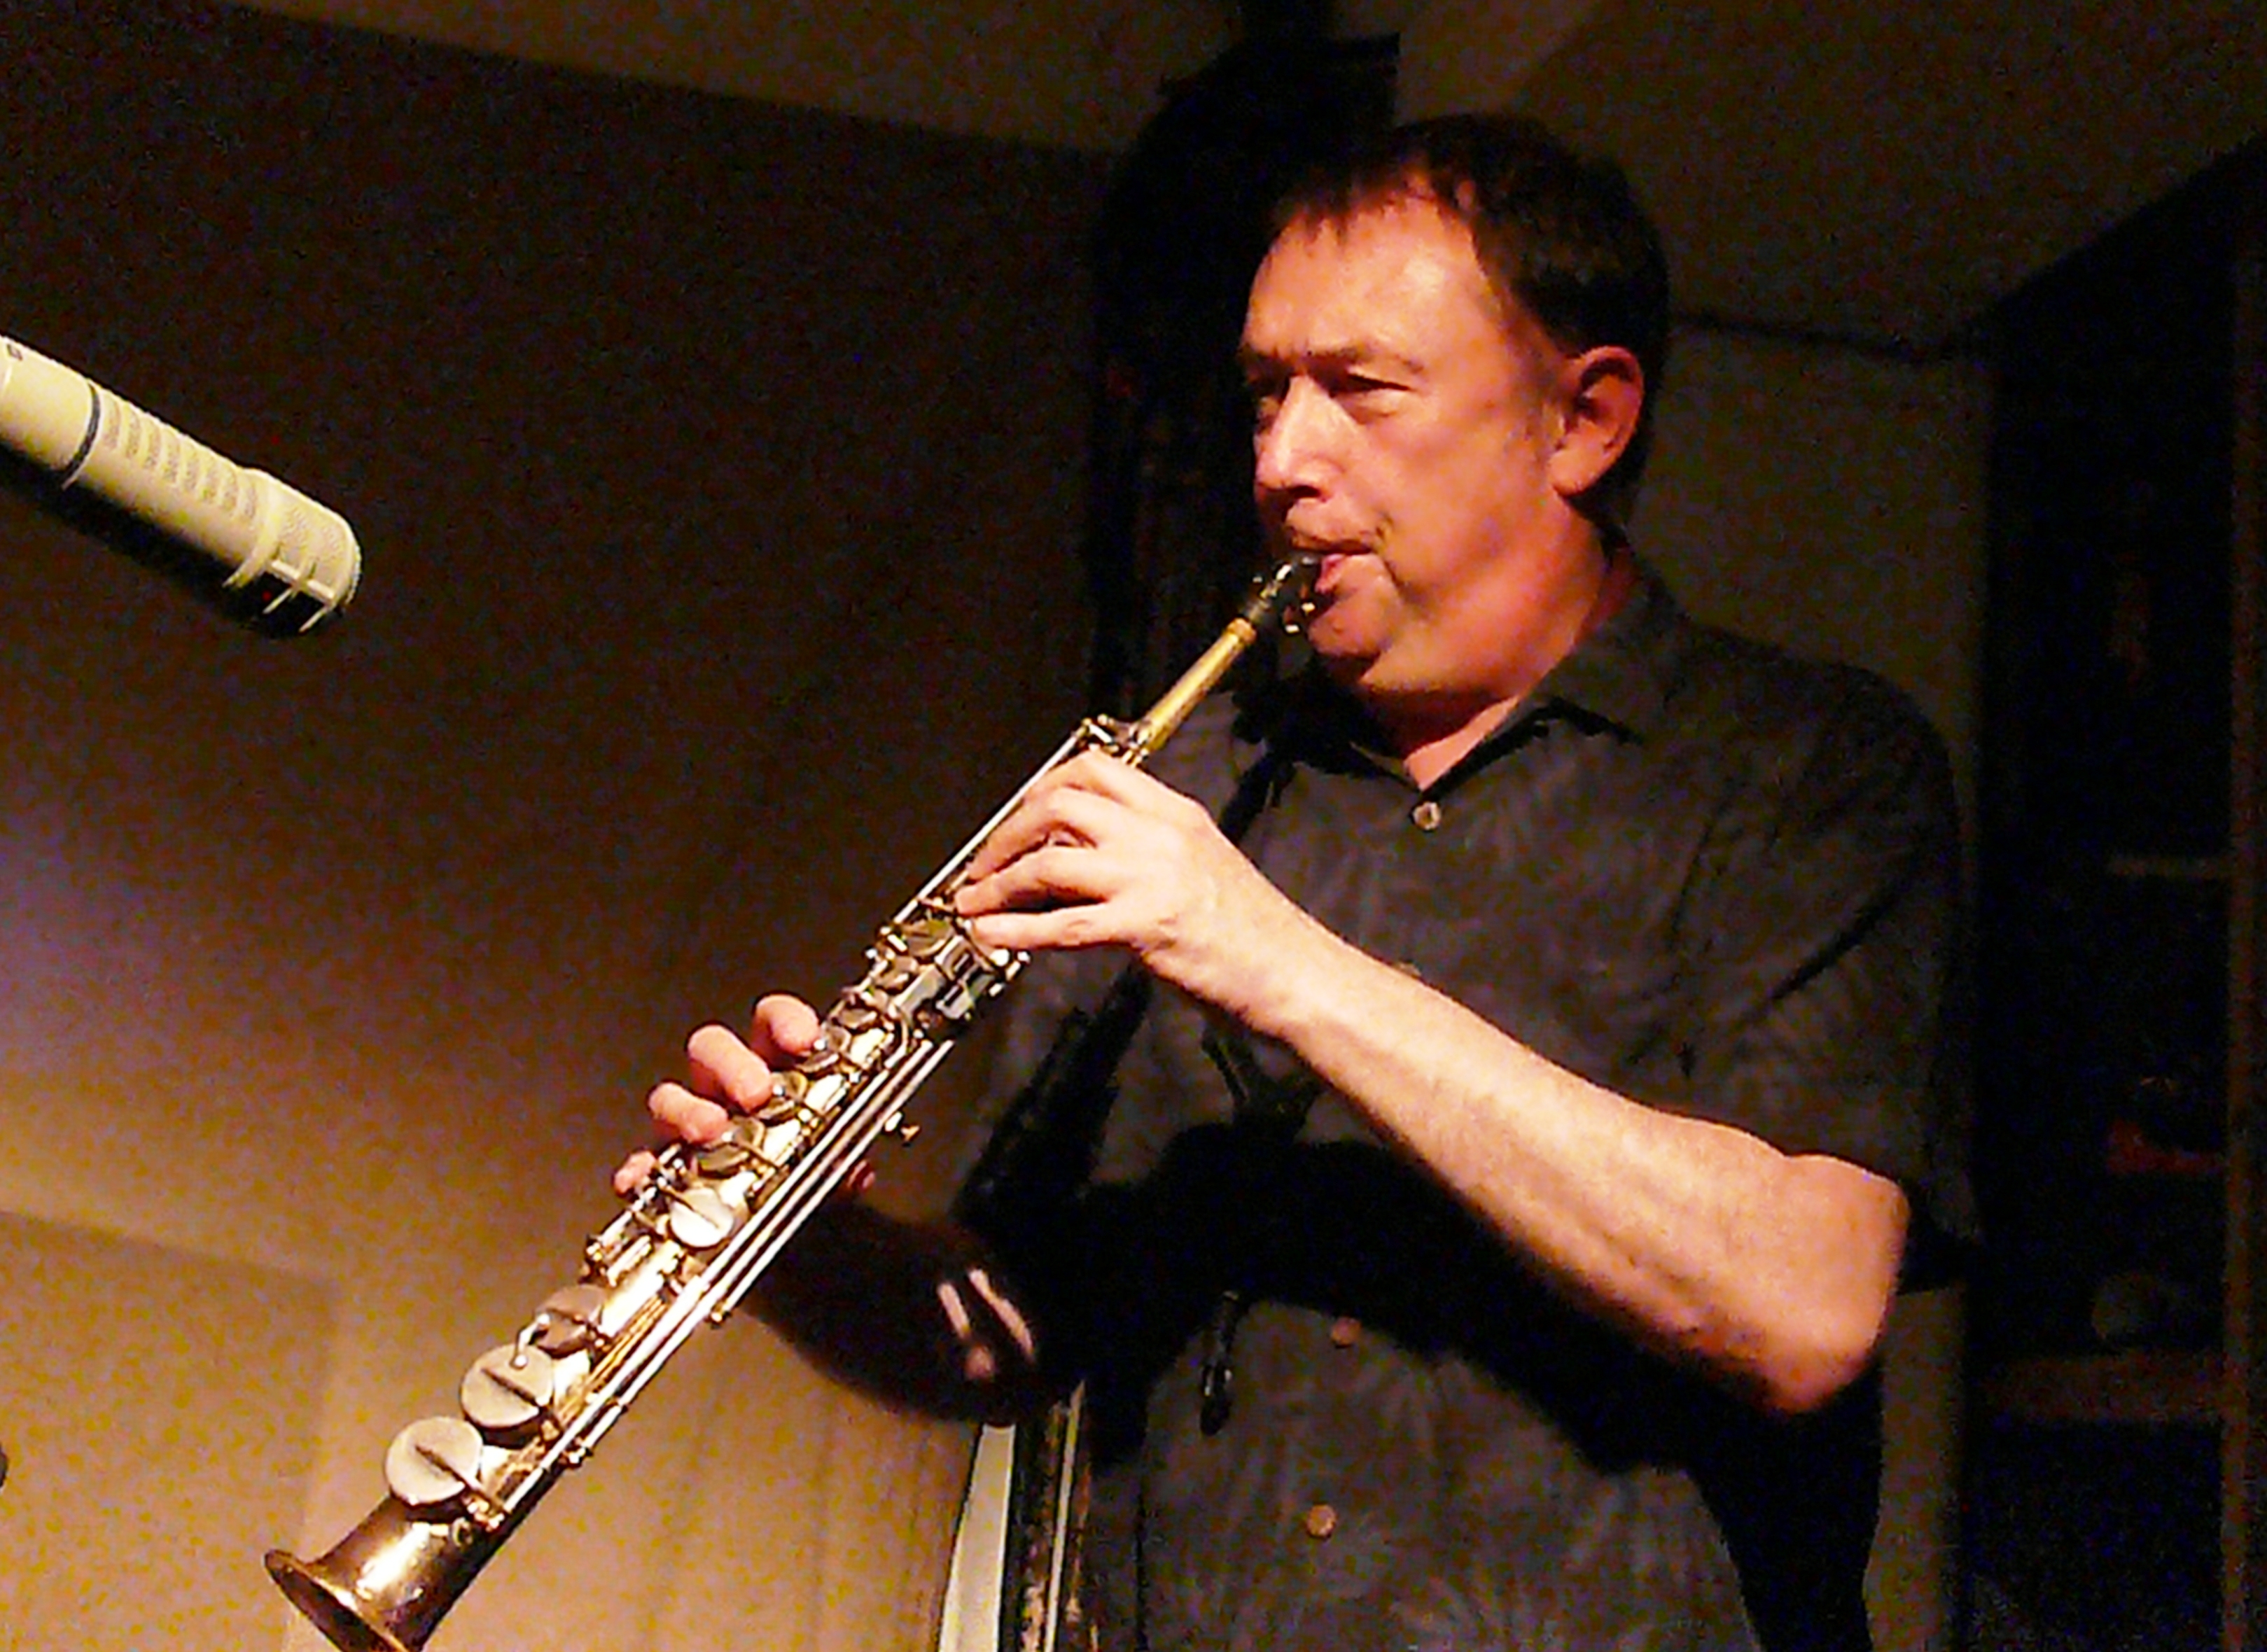 John Butcher at Cafe Oto, London in August 2017